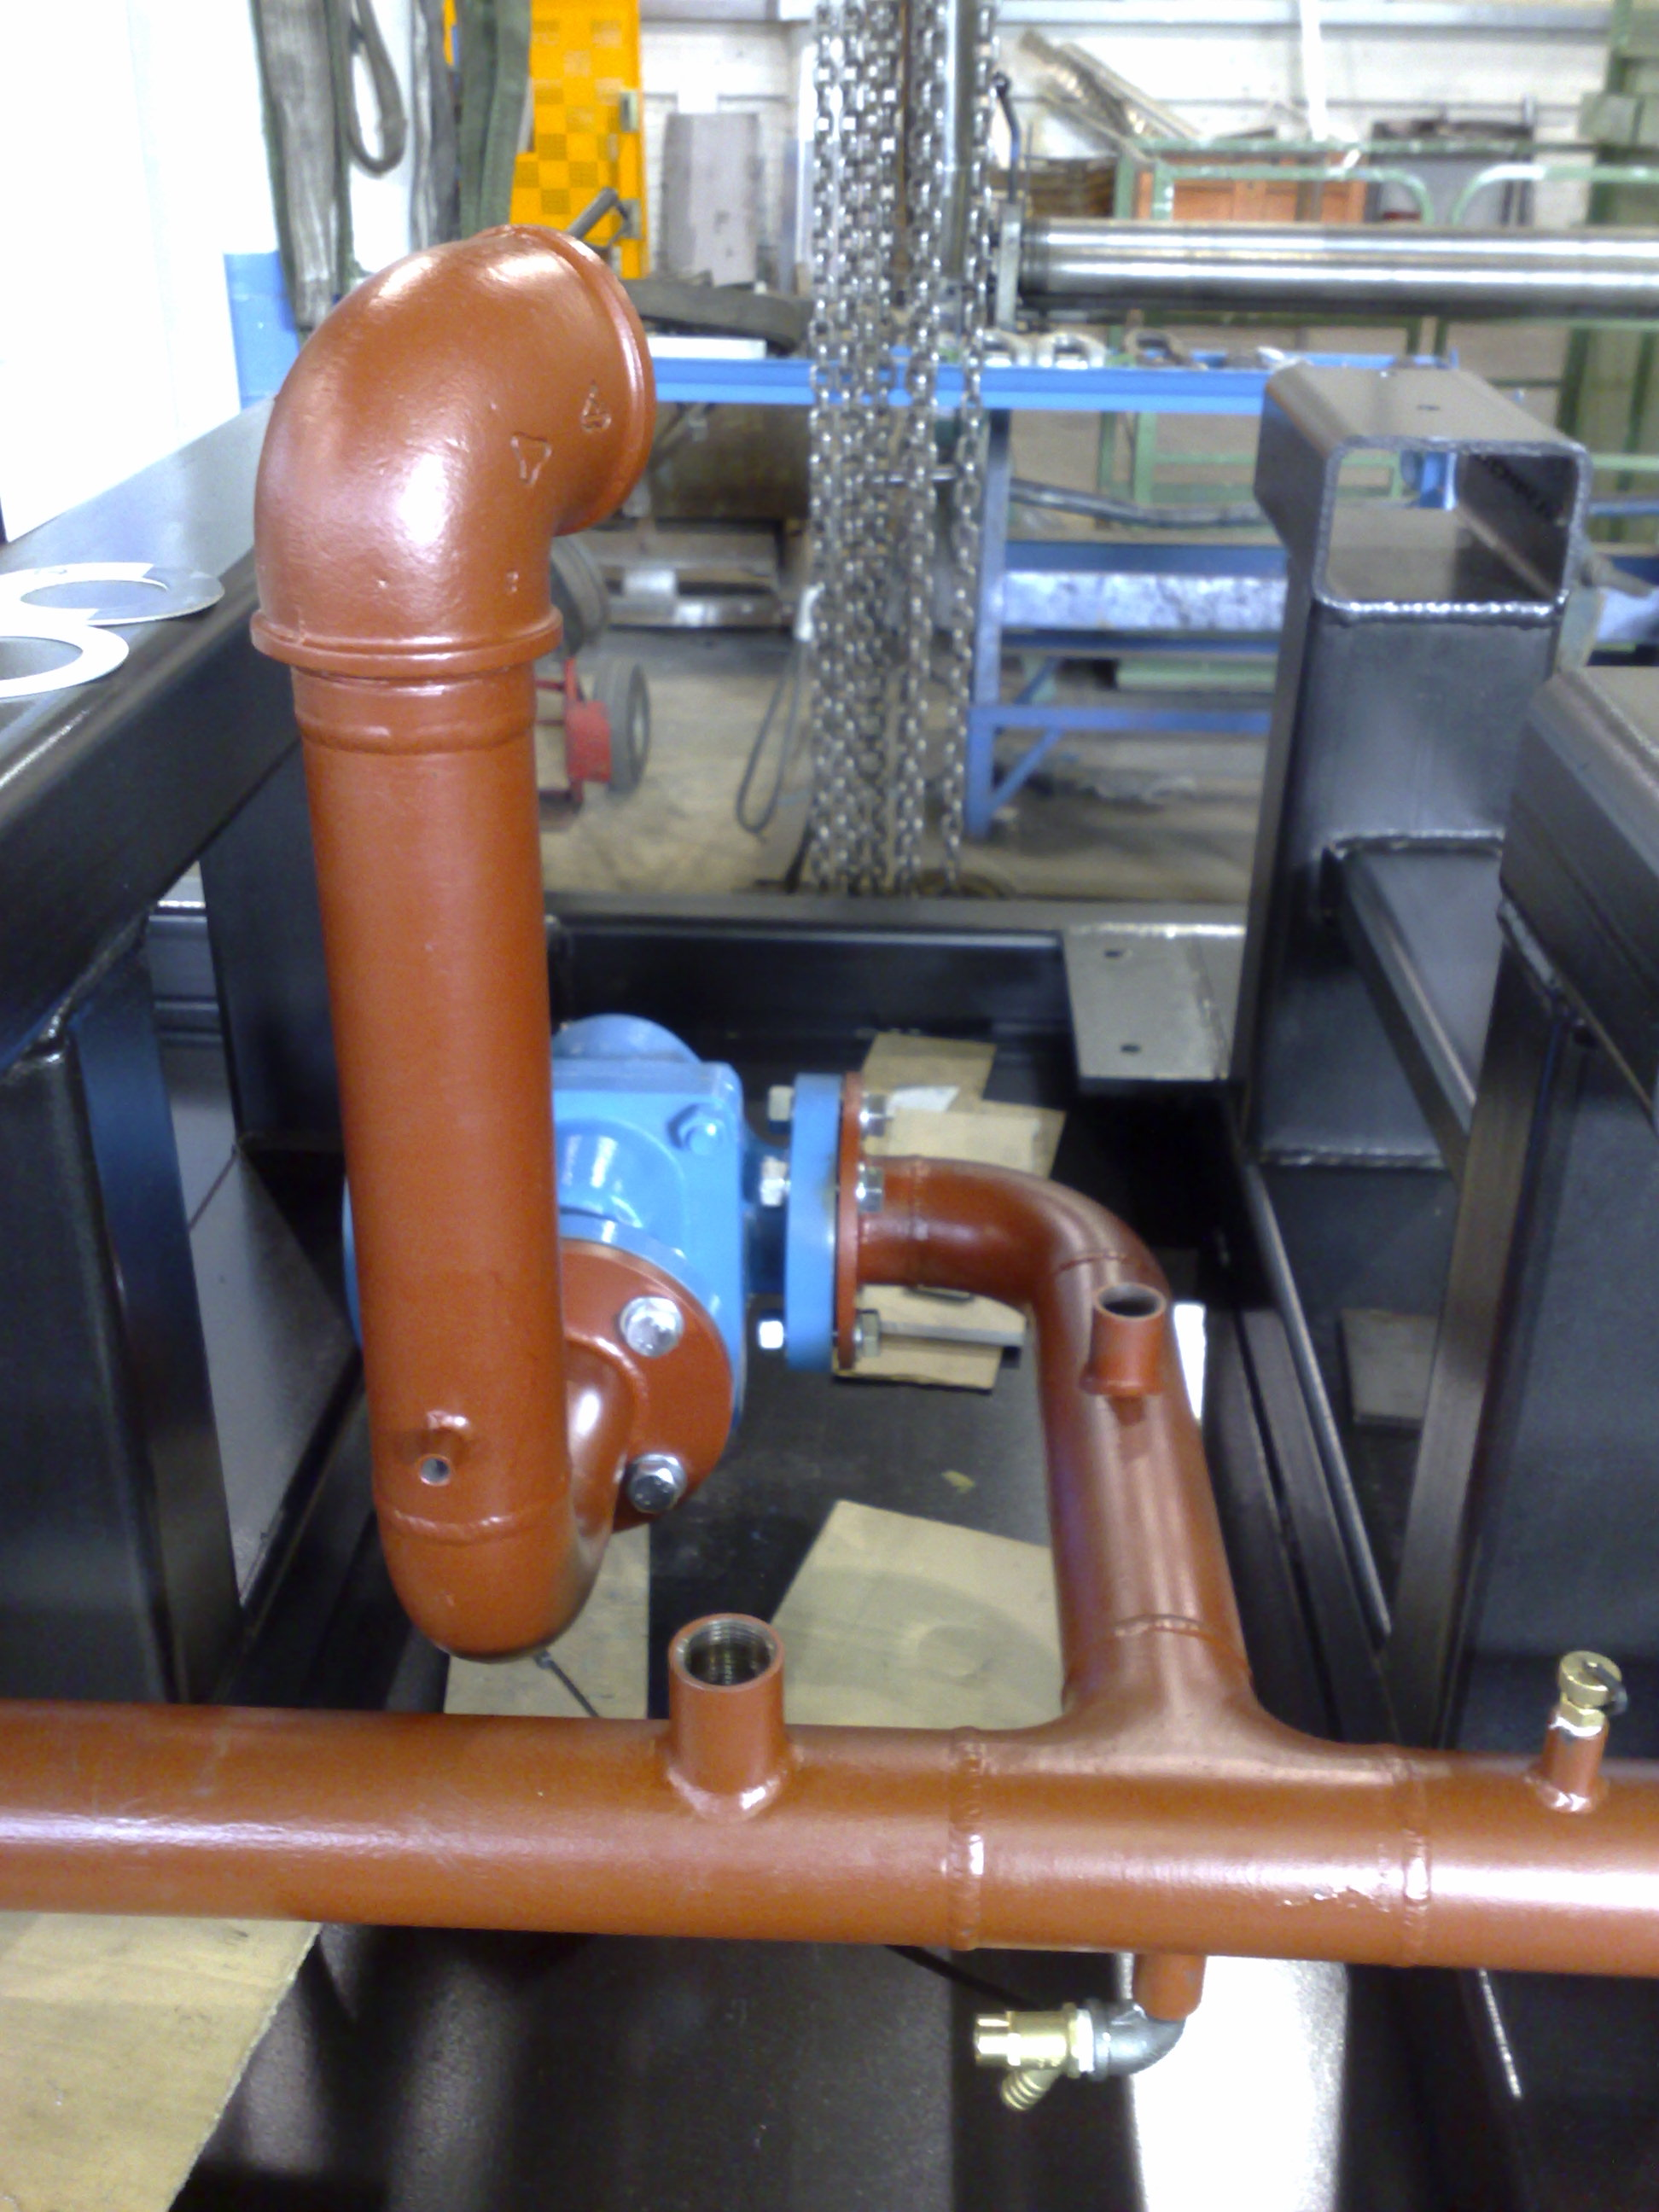 Cooling system and pipework